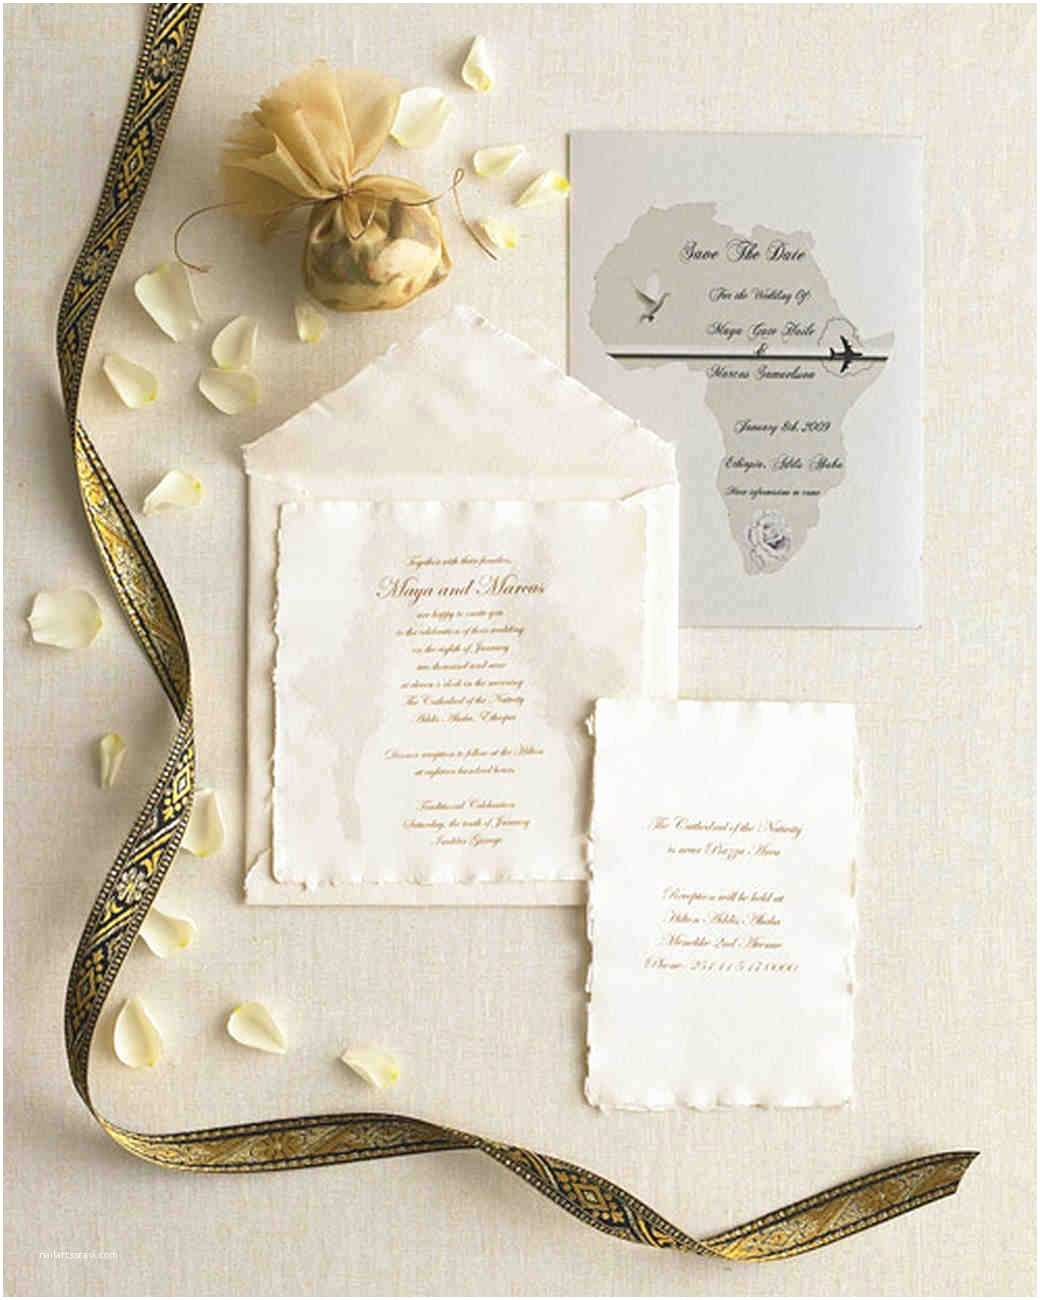 Ethiopian Traditional Wedding Invitation Cards Marcus Samuelsson and Maya Haile S Traditional Outdoor